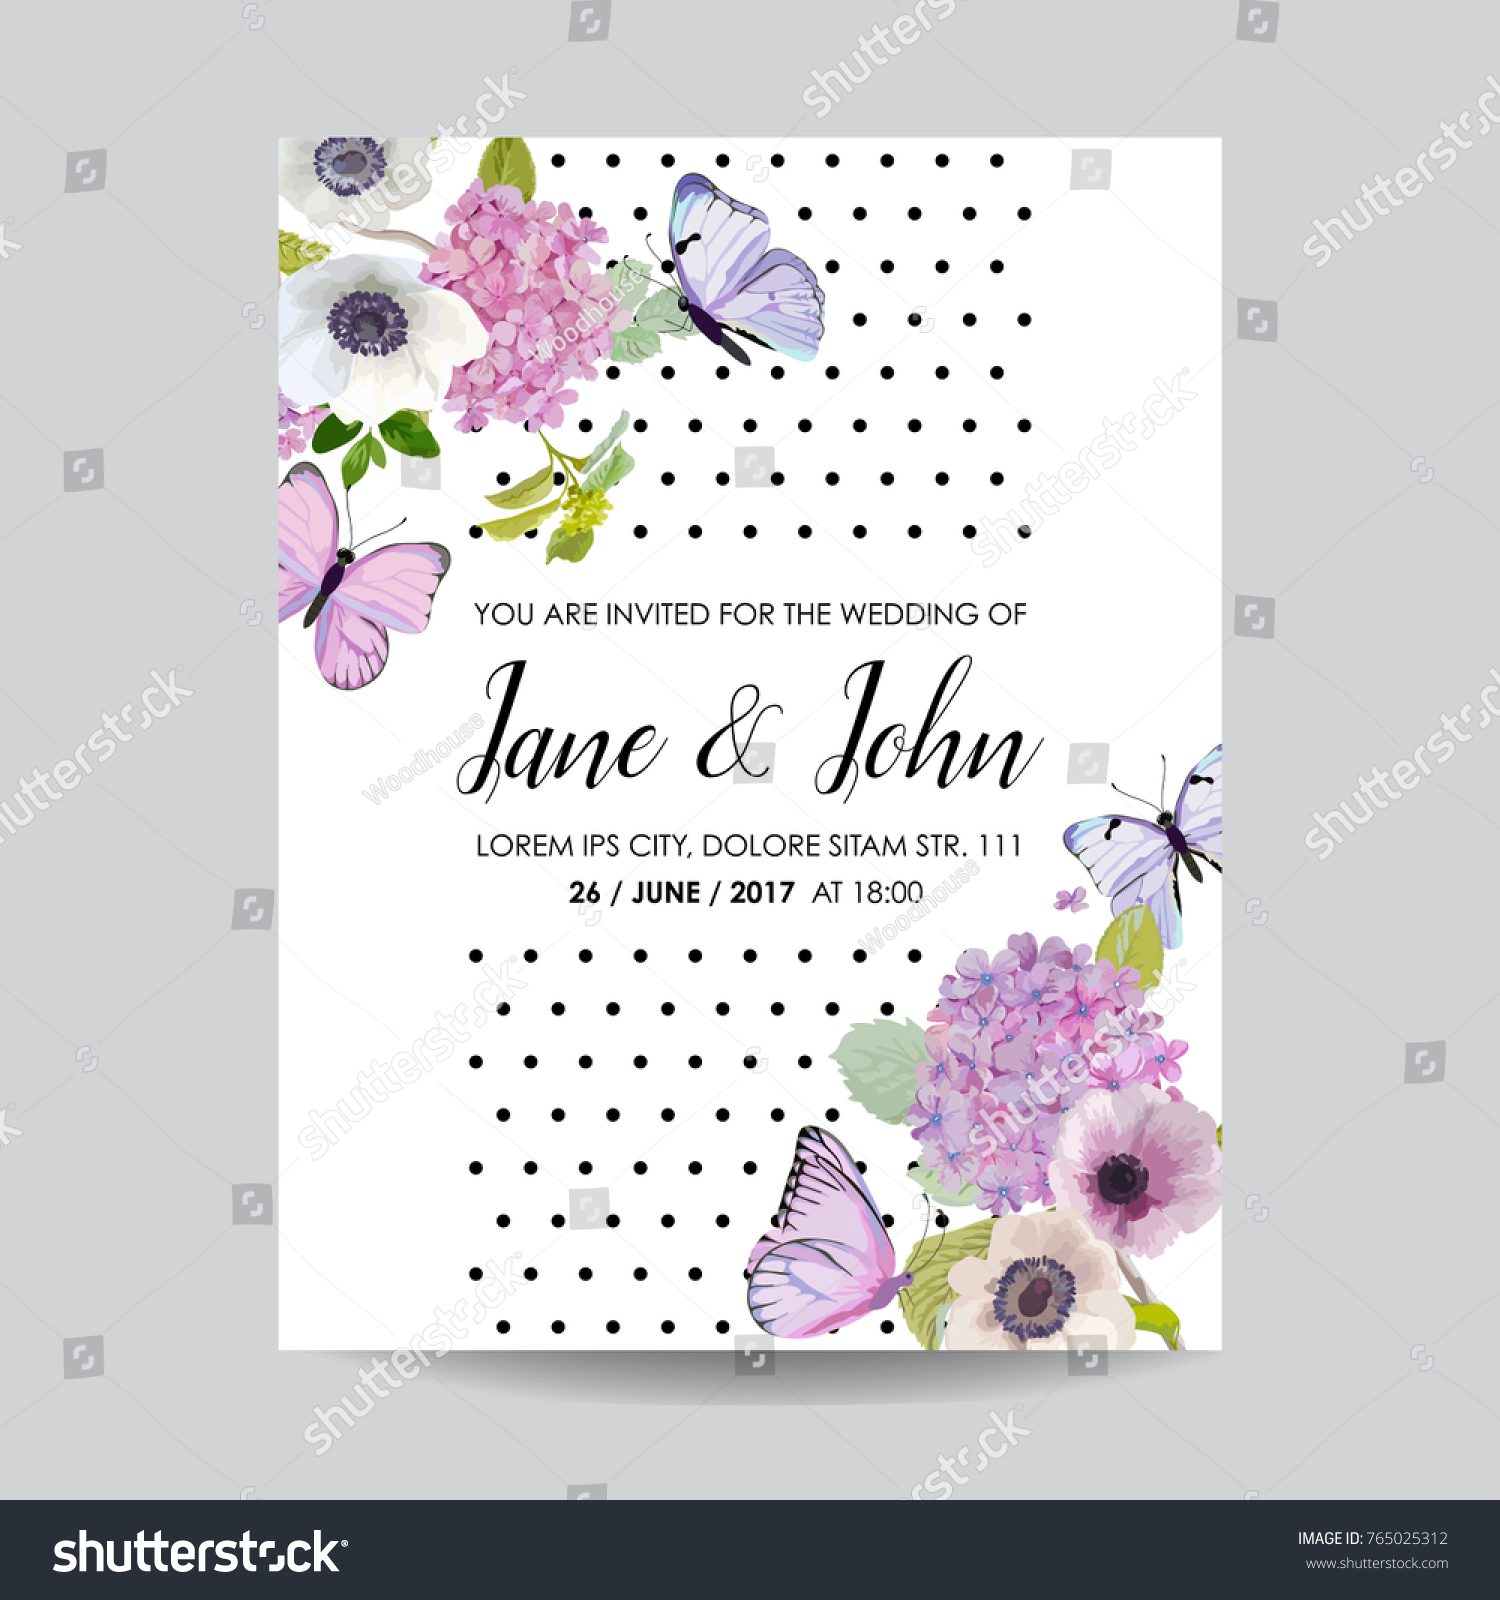 Save Date Card Wedding Invitation Template Stock Vector (2018 ...